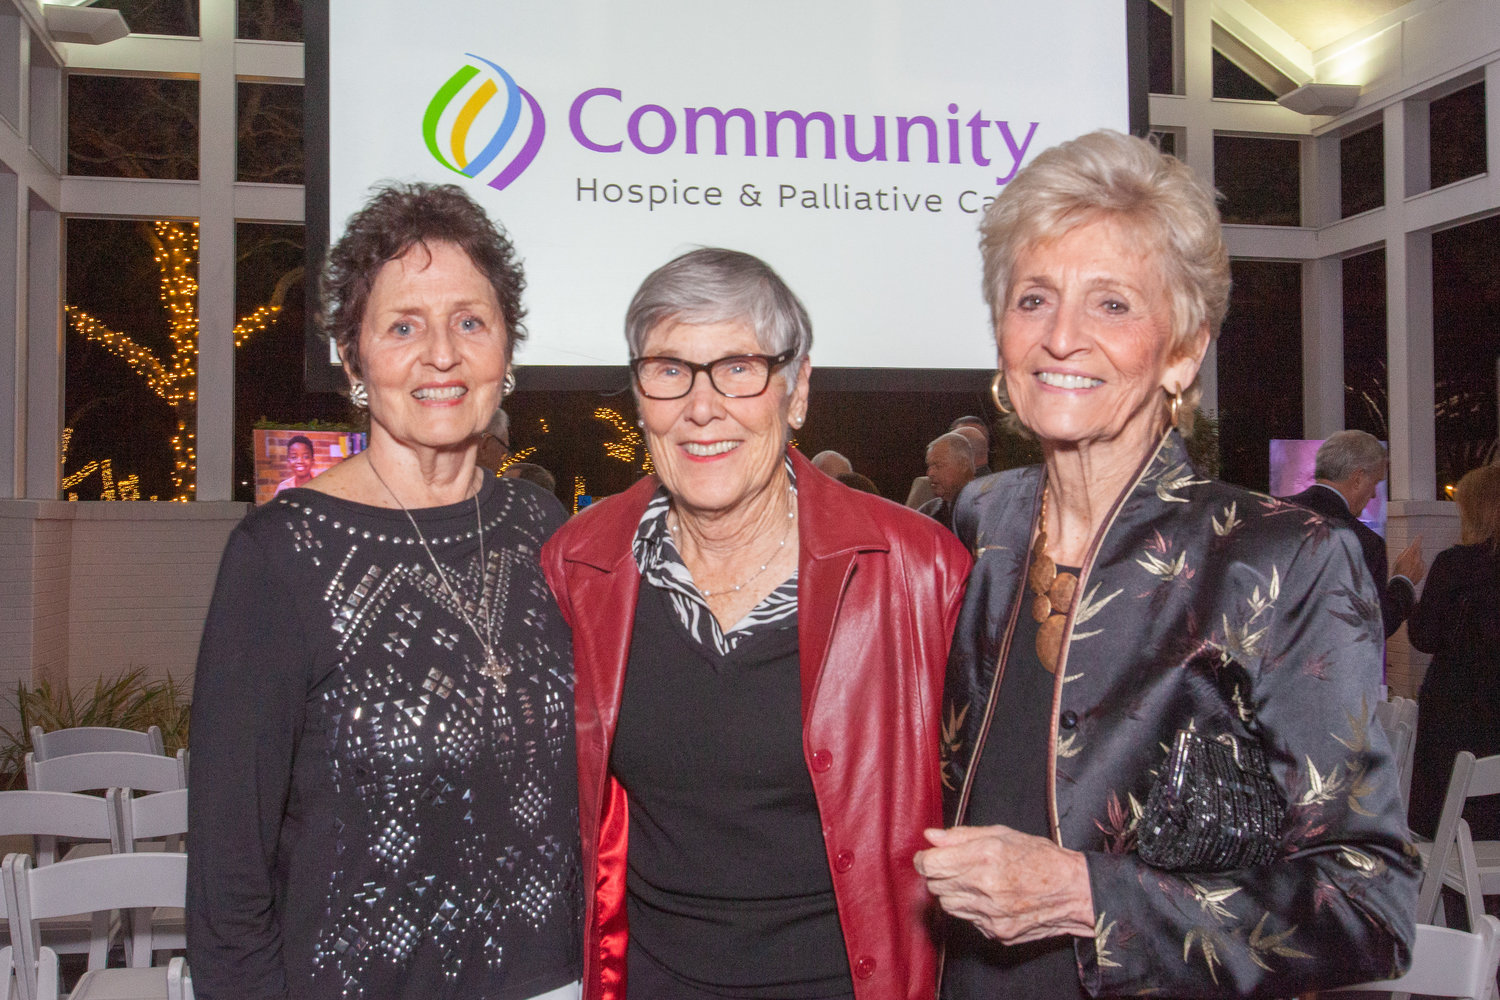 Trudy Harris, Connie Kolster and Jackie Aquino — a trio of nurses who were among those instrumental in starting Community Hospice — gather at Community Hospice & Palliative Care's 40th anniversary Light Party on Jan. 25.